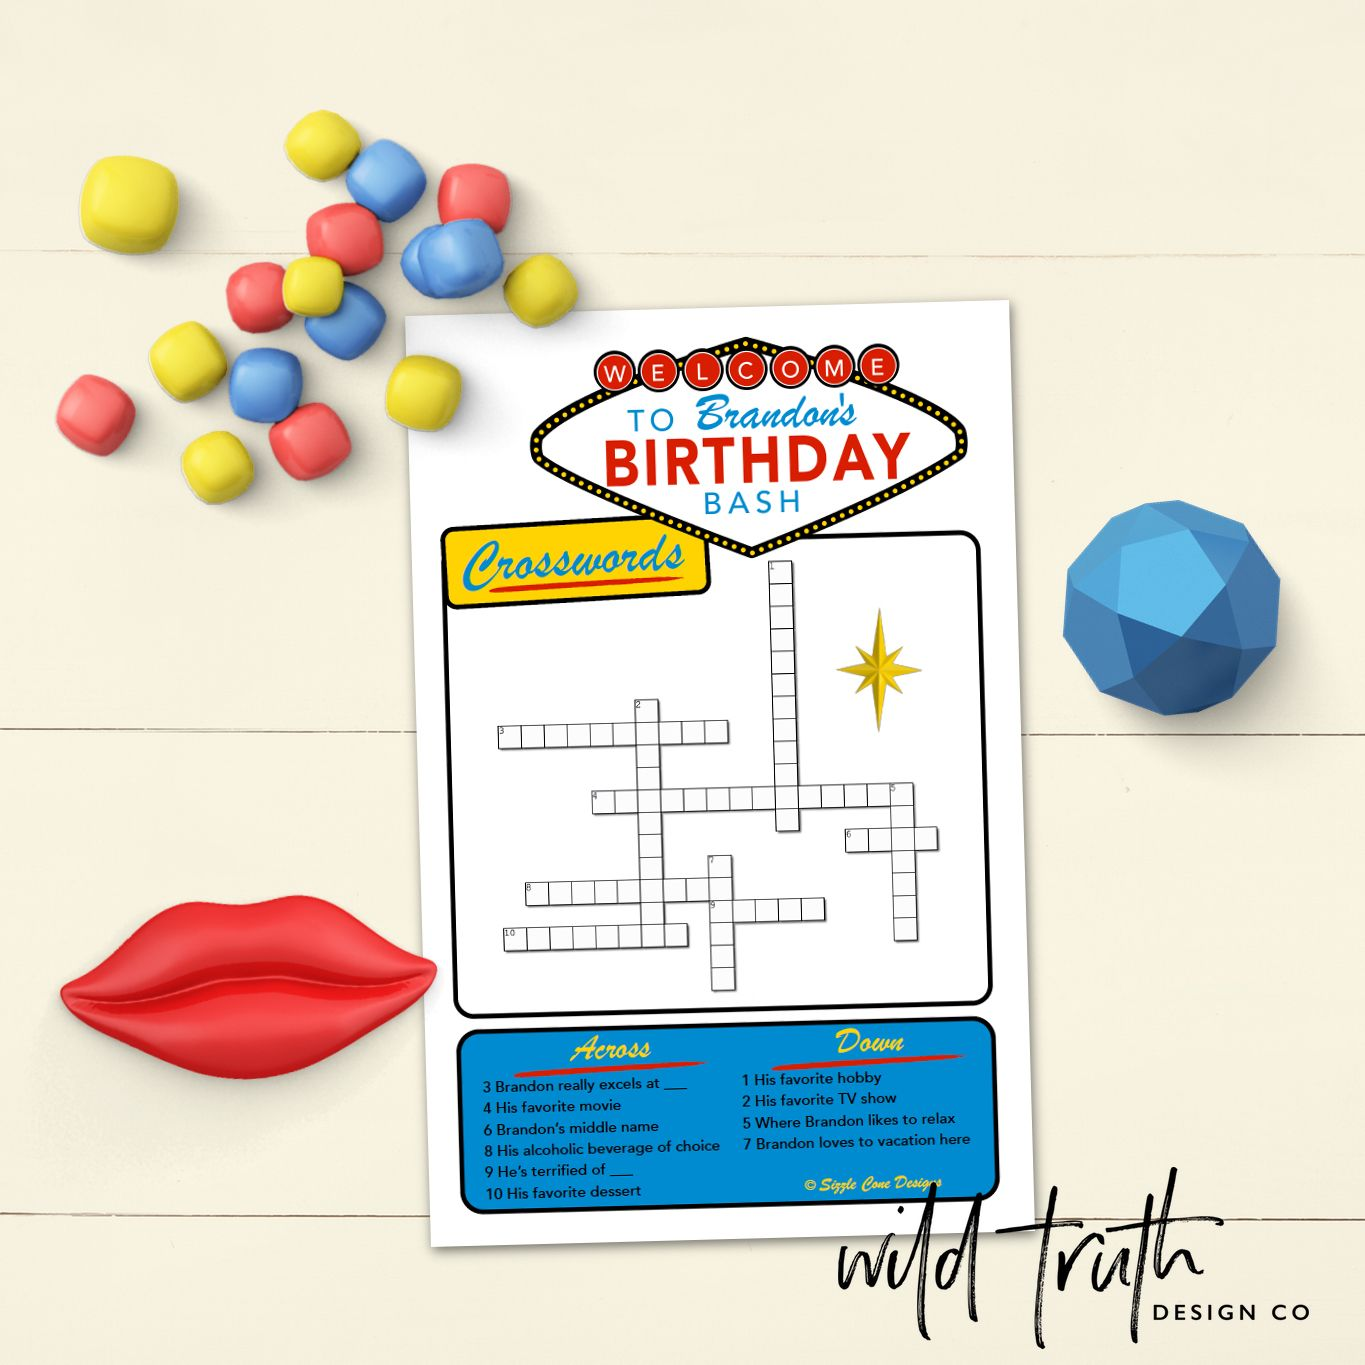 Quiz Friends Fam With Your Very Own Vegas Themed Birthday Crosswords Game 10 Custom Clues Available As Printable PDF Or Printed Cards